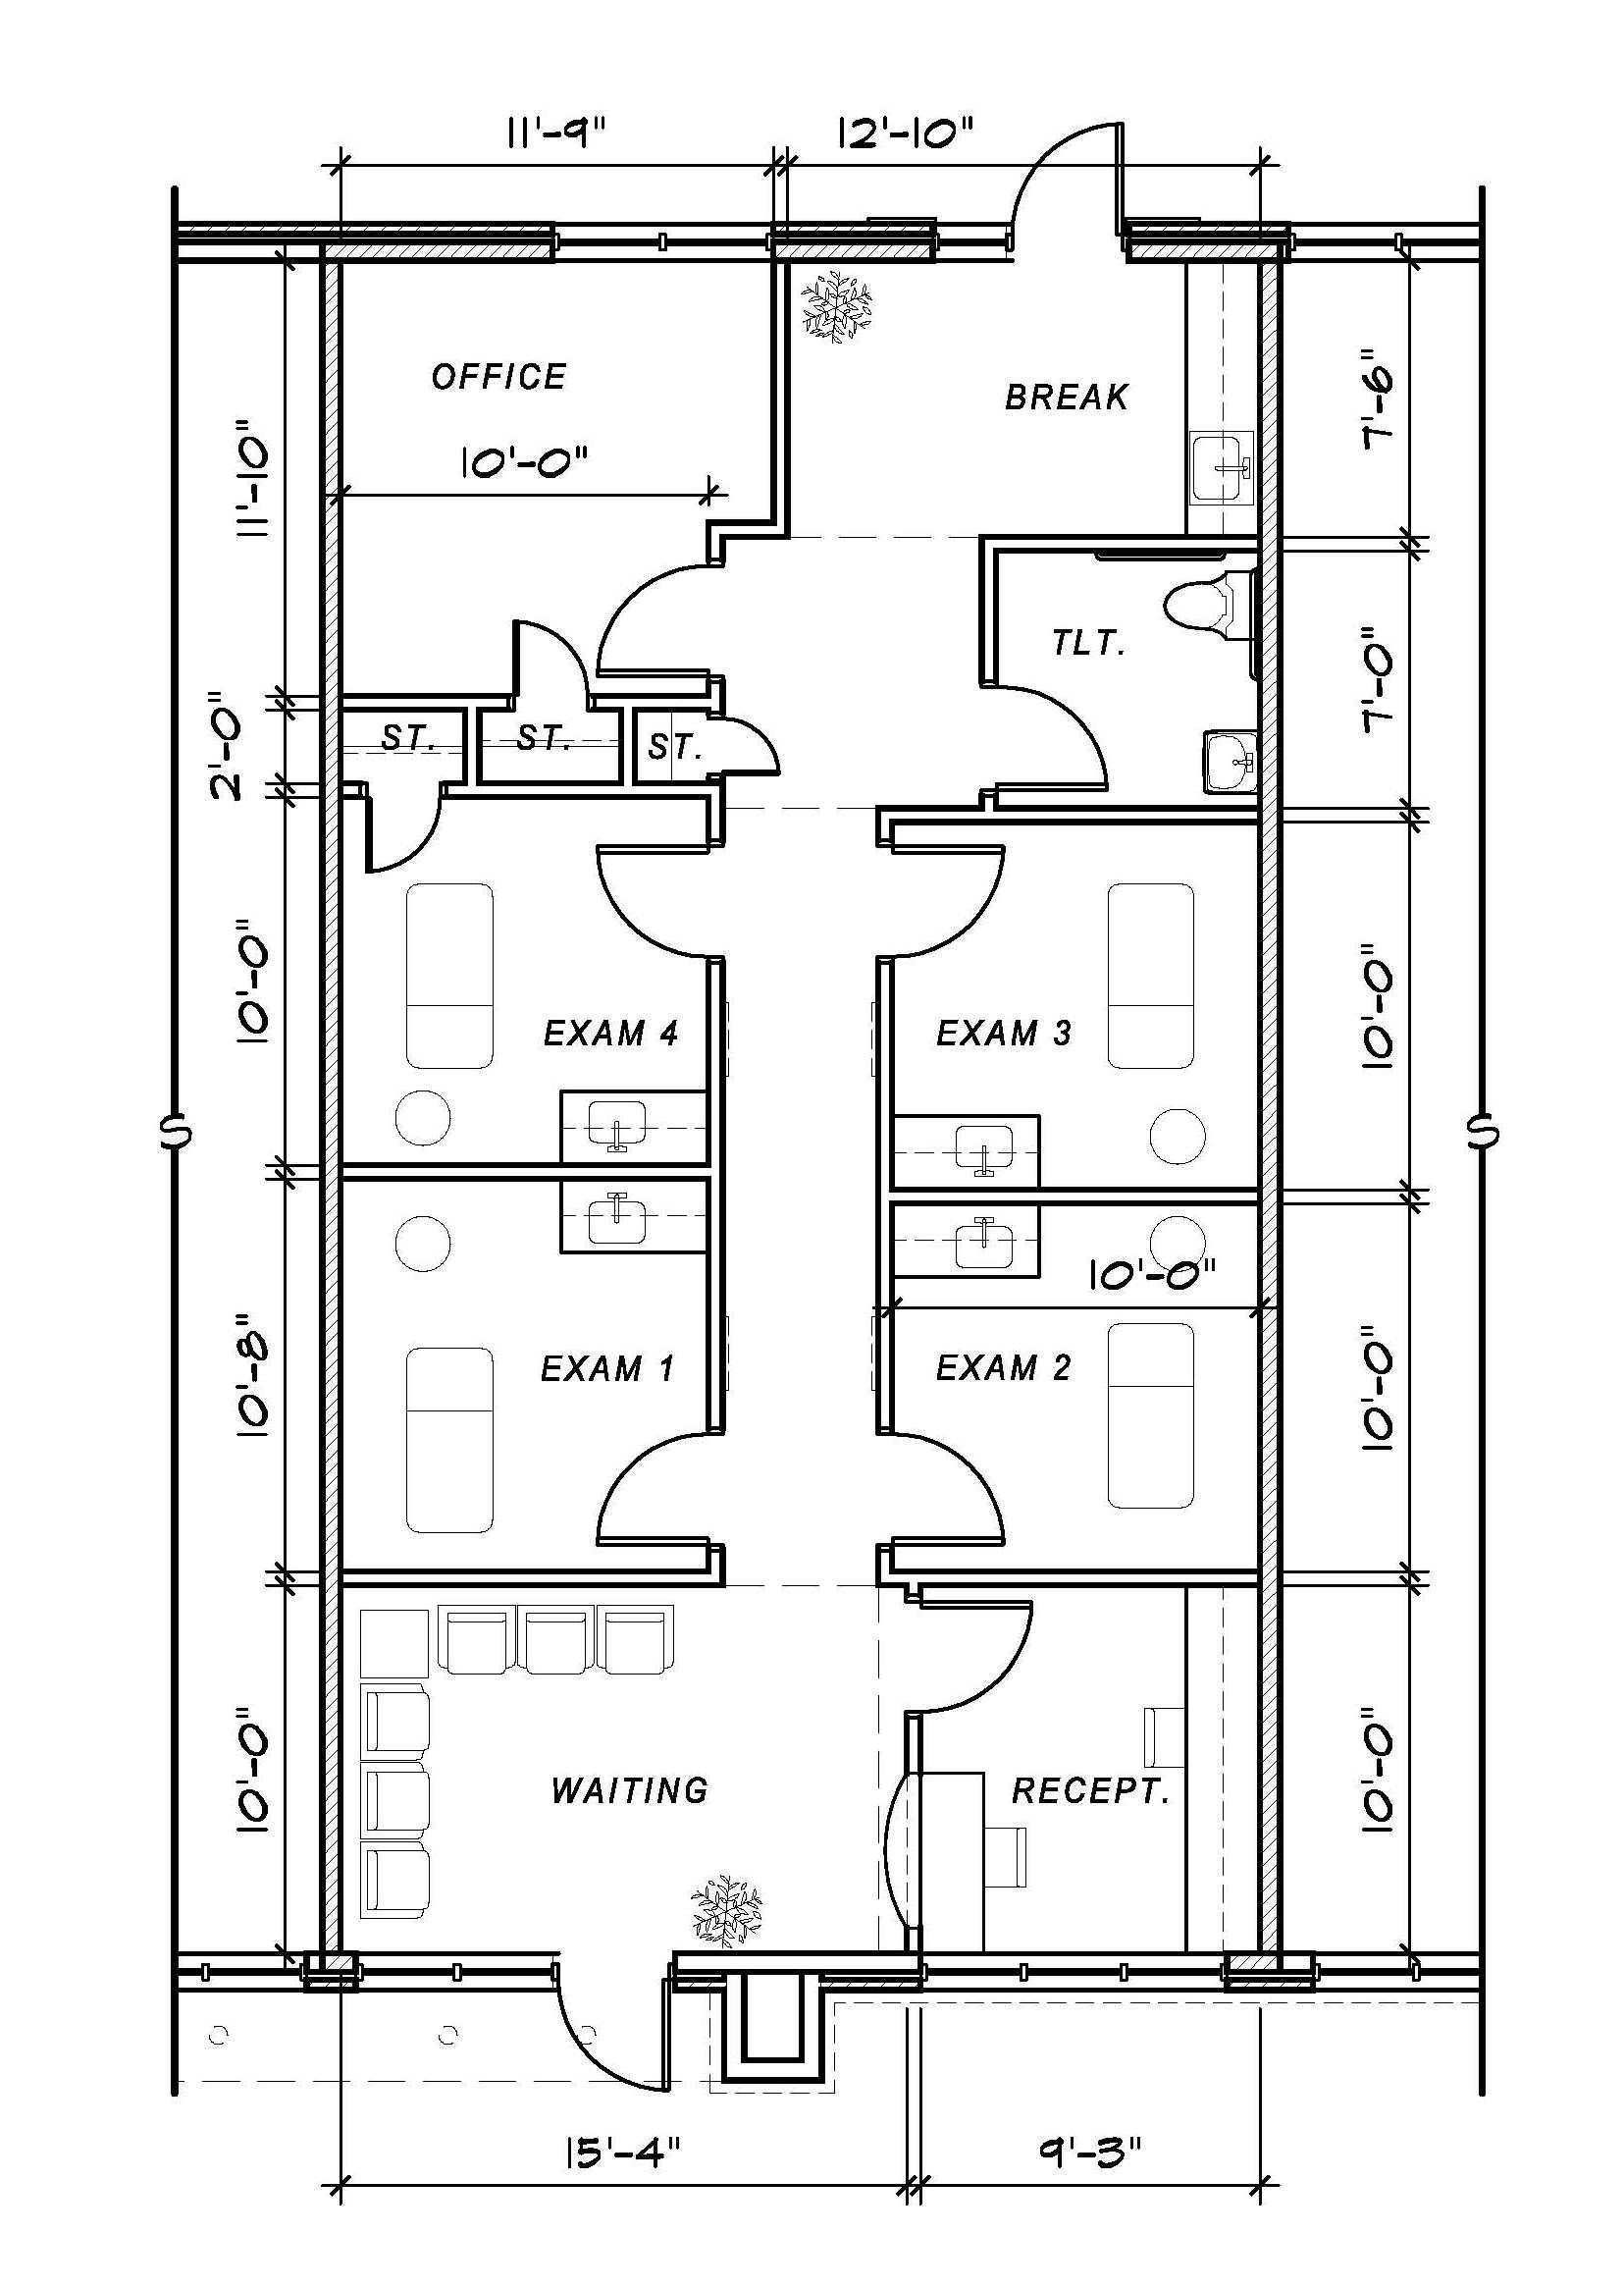 Medical office floor plan samples decorating inspiration for X ray room floor plan